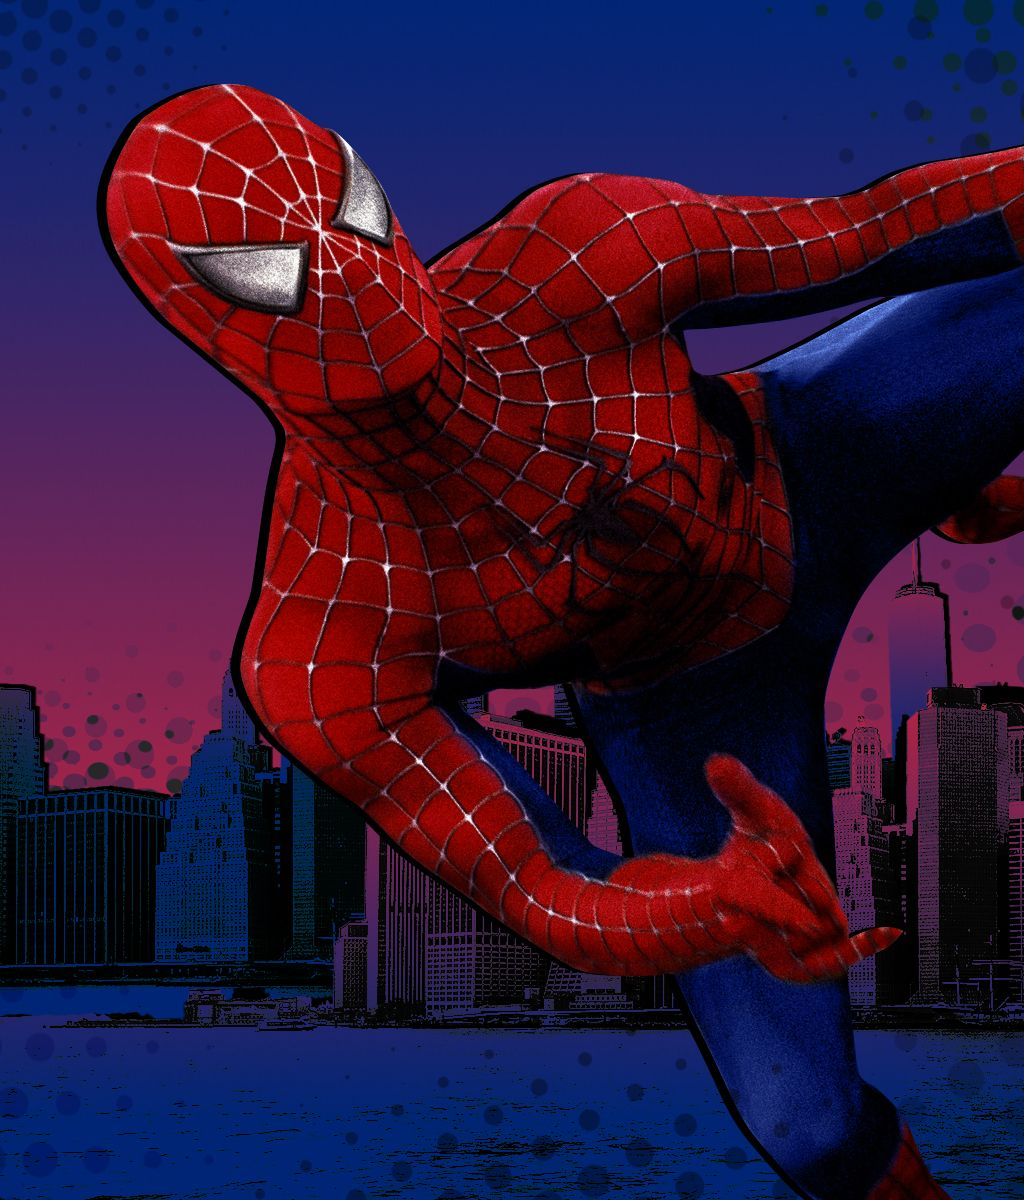 Map Of SpiderMan Movie Shooting Locations In New York City - Nyc rat map